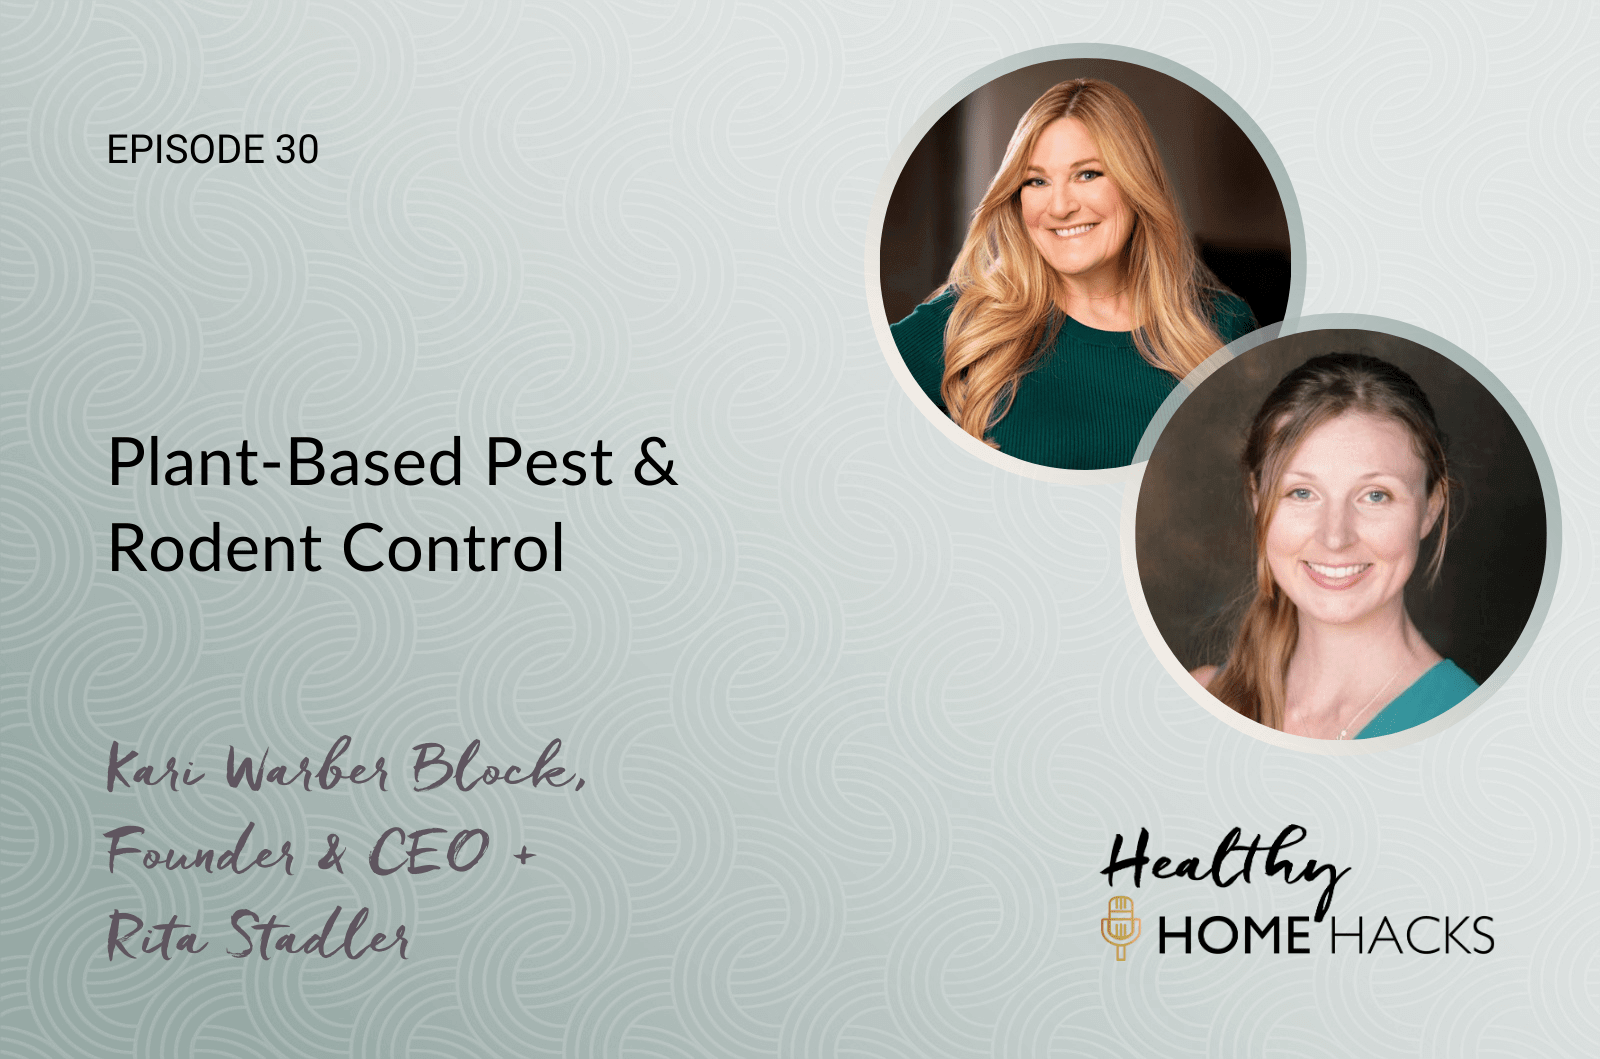 Plant-Based Pest & Rodent Control